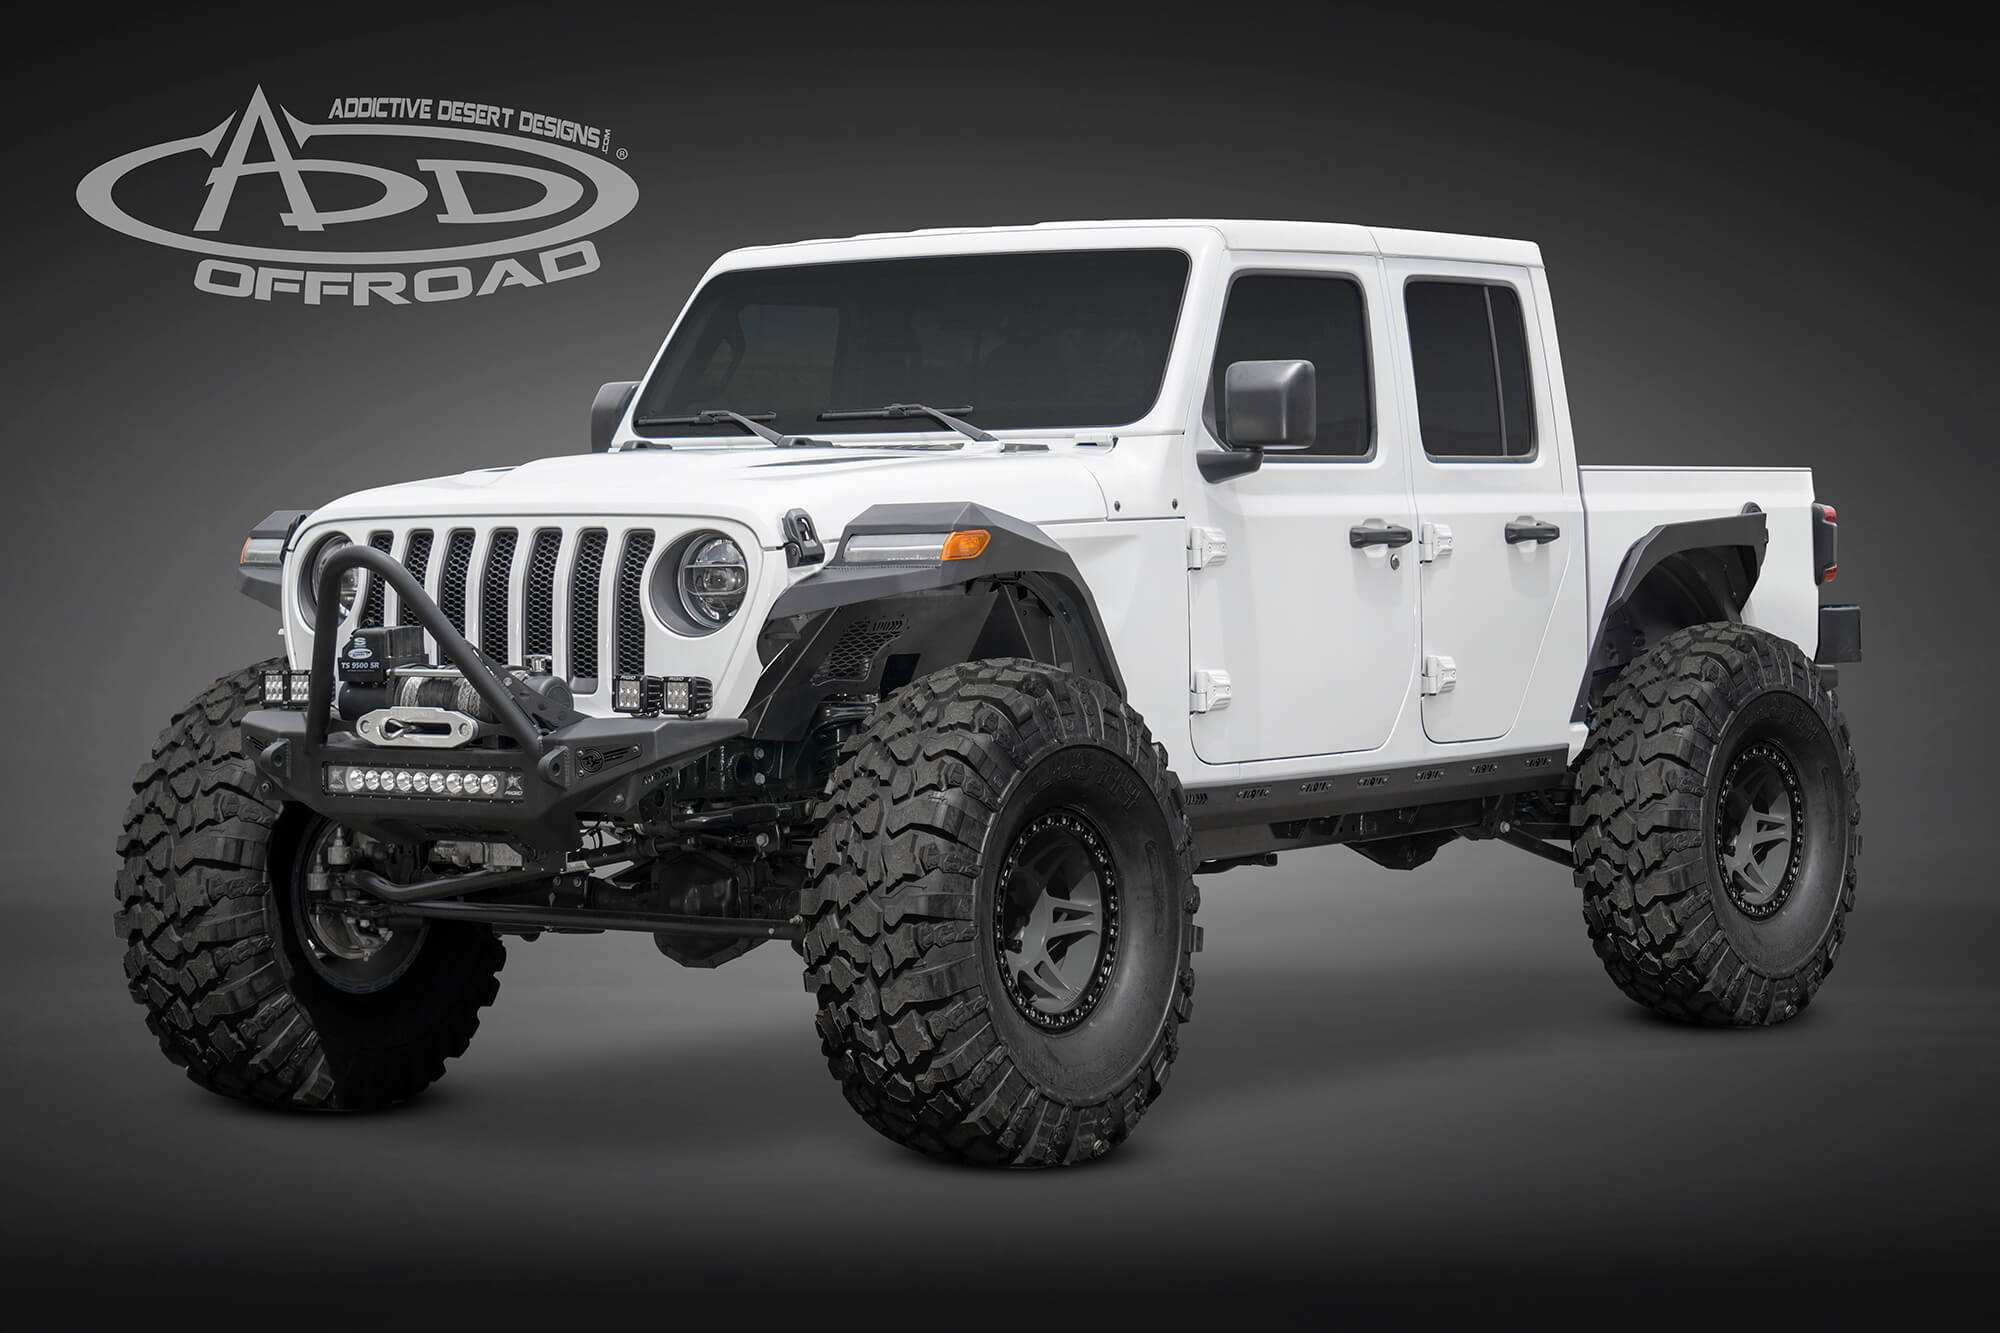 90 All New 2020 Jeep Gladiator Accessories Ratings for 2020 Jeep Gladiator Accessories